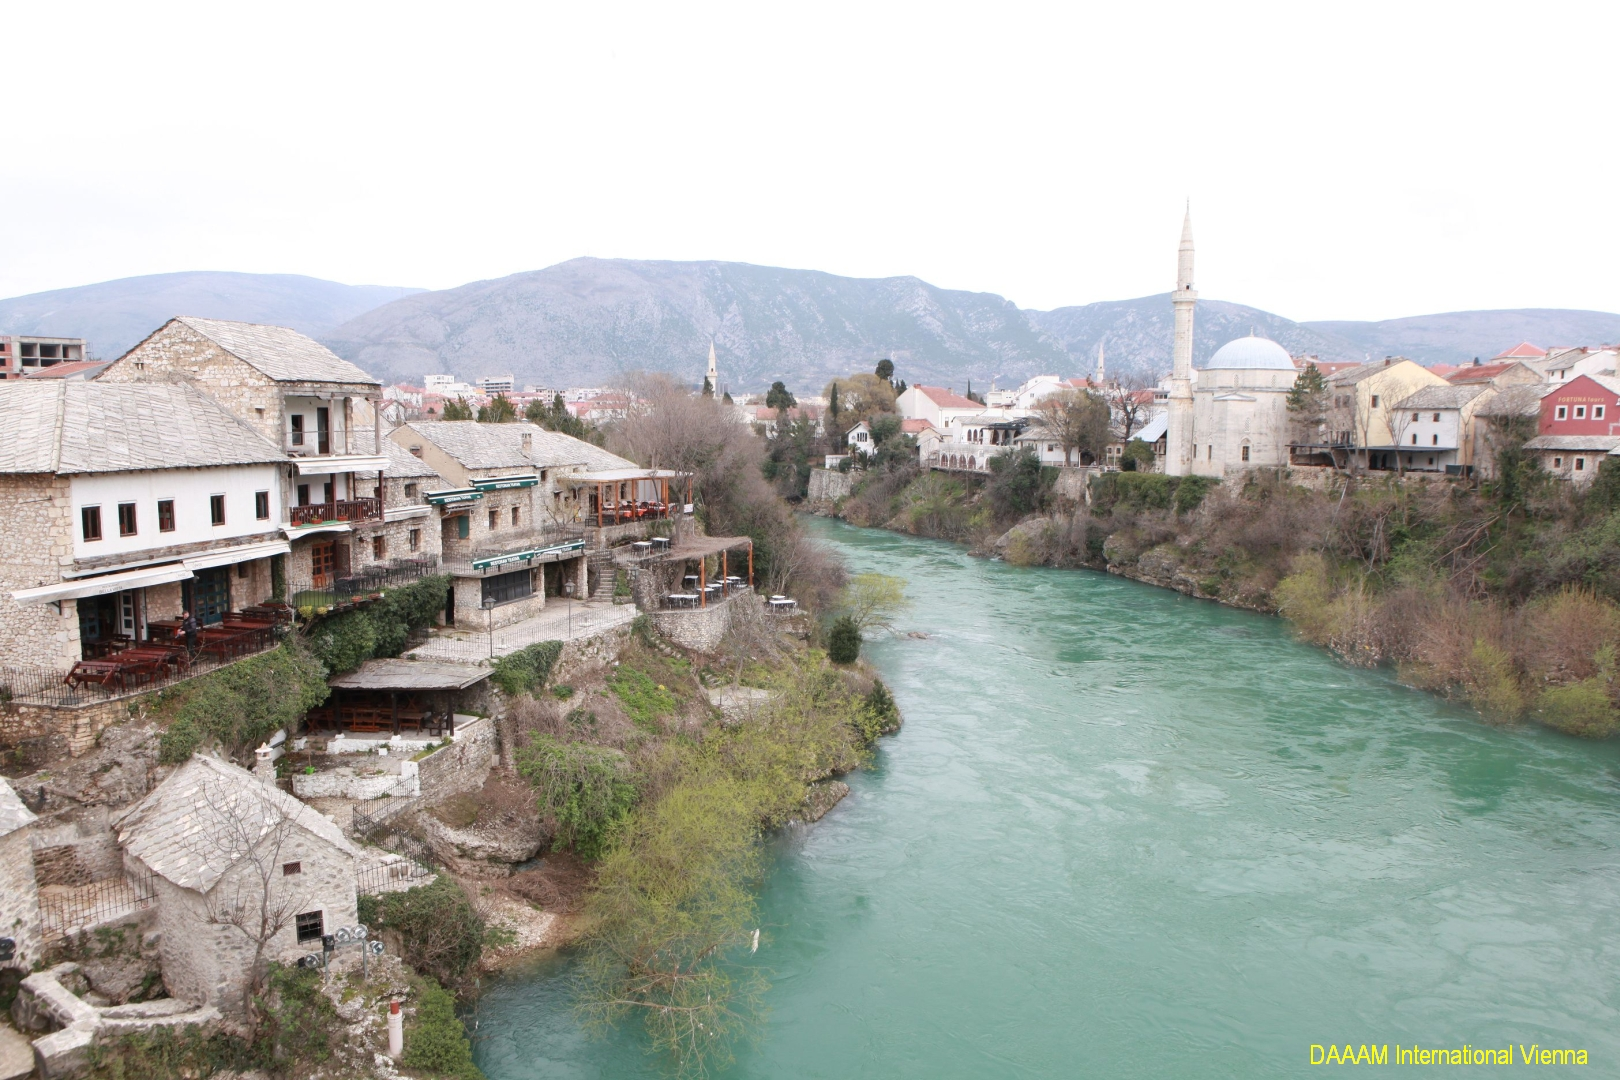 DAAAM_2016_Mostar_01_Magic_City_of_Mostar_066